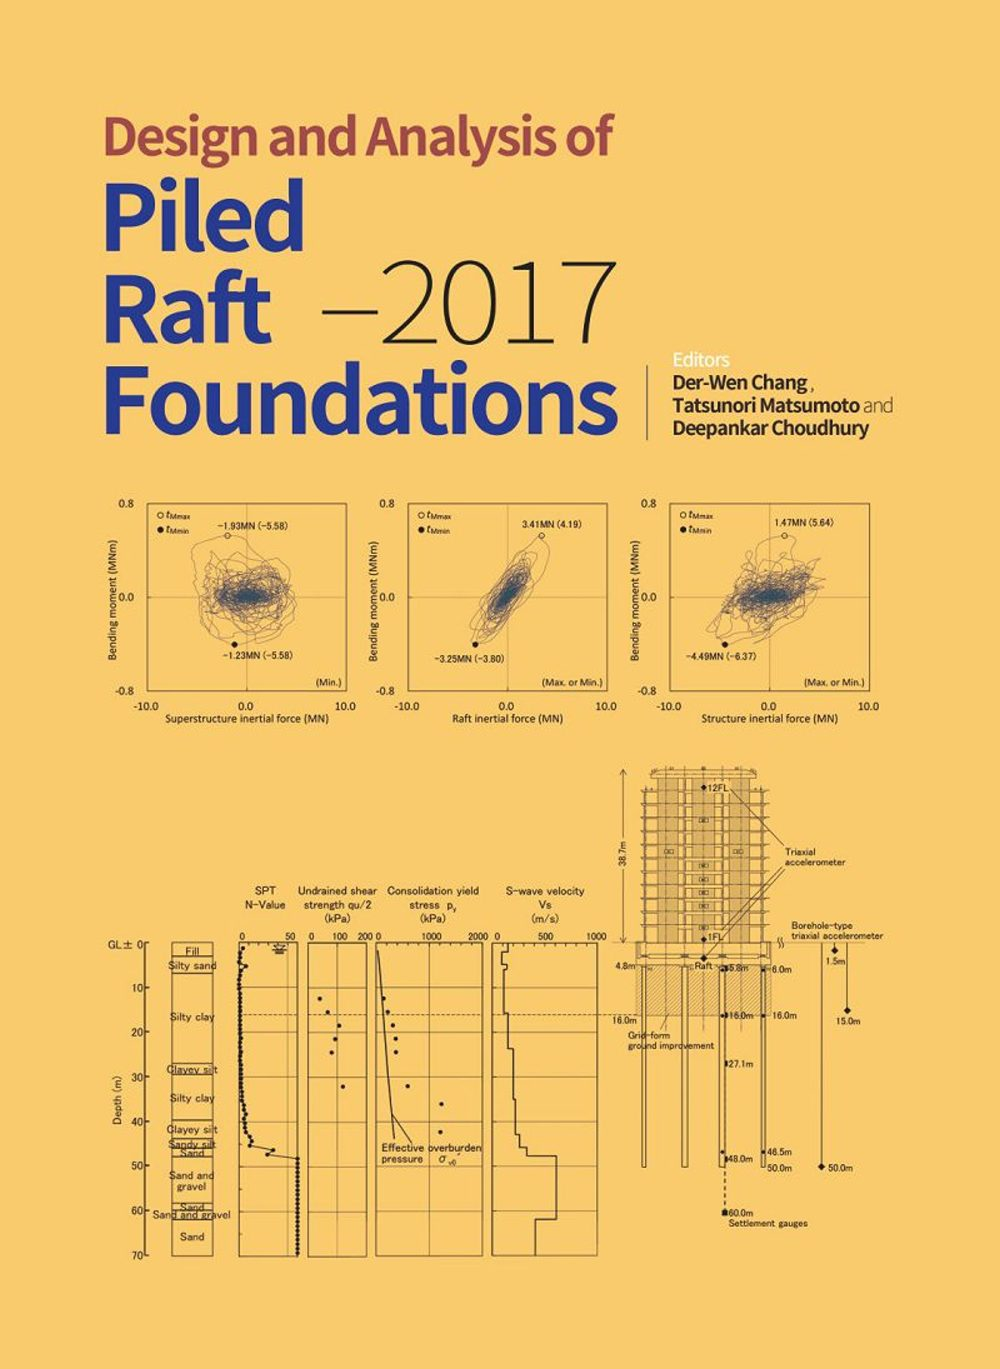 analysis of a foundation Nonetheless, this analysis reveals the serious defects in the way foundation aid is distributed broader understanding of these deficiencies and inequities should spark a debate about achieving a fairer, more fiscally sustainable method of financing new york's public schools.